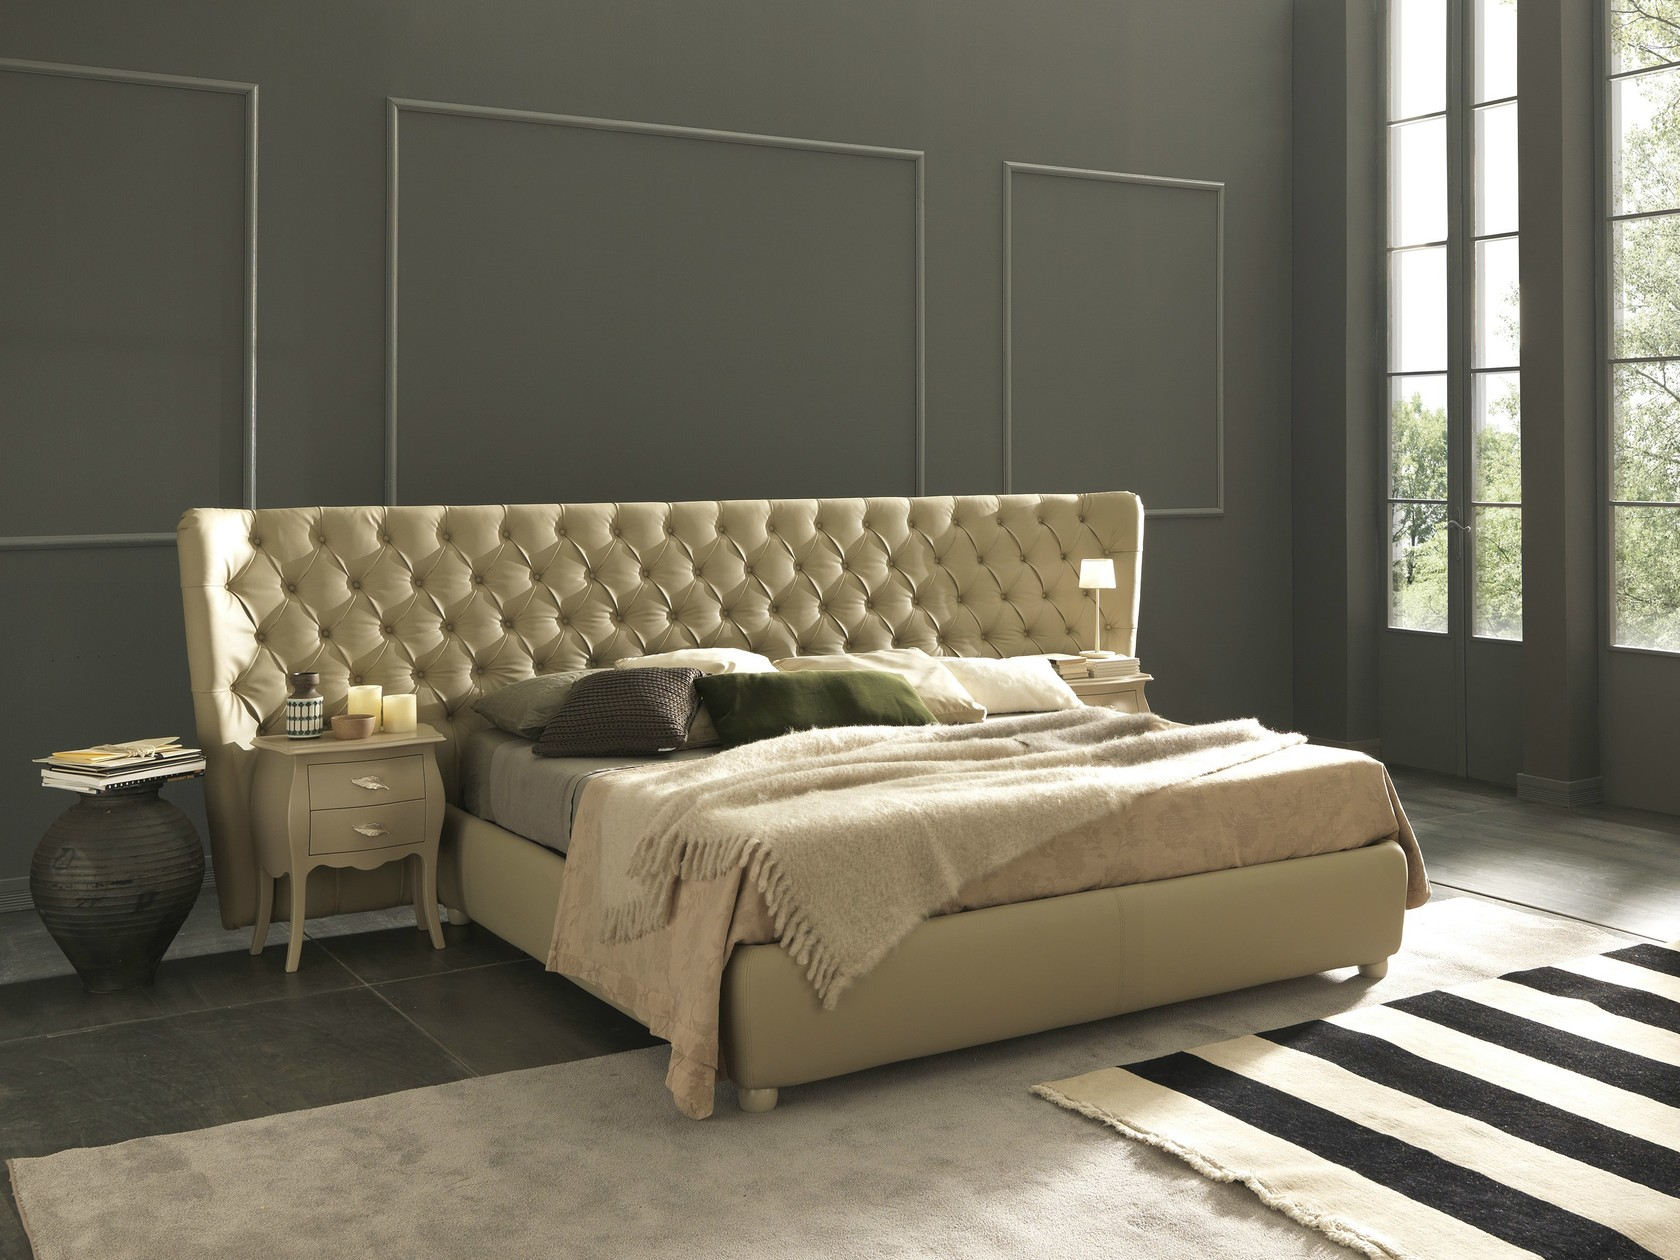 Selene Extra Large Bed with Tufted Headboard - Selene Extra Large features an extra-wide headboard. The squared shapes gain lightness thanks to the round feet that recall the sinuous quilting on the headboard and the graceful shapes of Venice night table.  Fir structure - Aluminum available on request Standard feet vasetto - non-removable headboard Variants: with H 29 bed frame / with H 29 box / with H 29 easy up box  All beds are available in different sizes and frame options. Please enquire for more details.  | Matter of Stuff